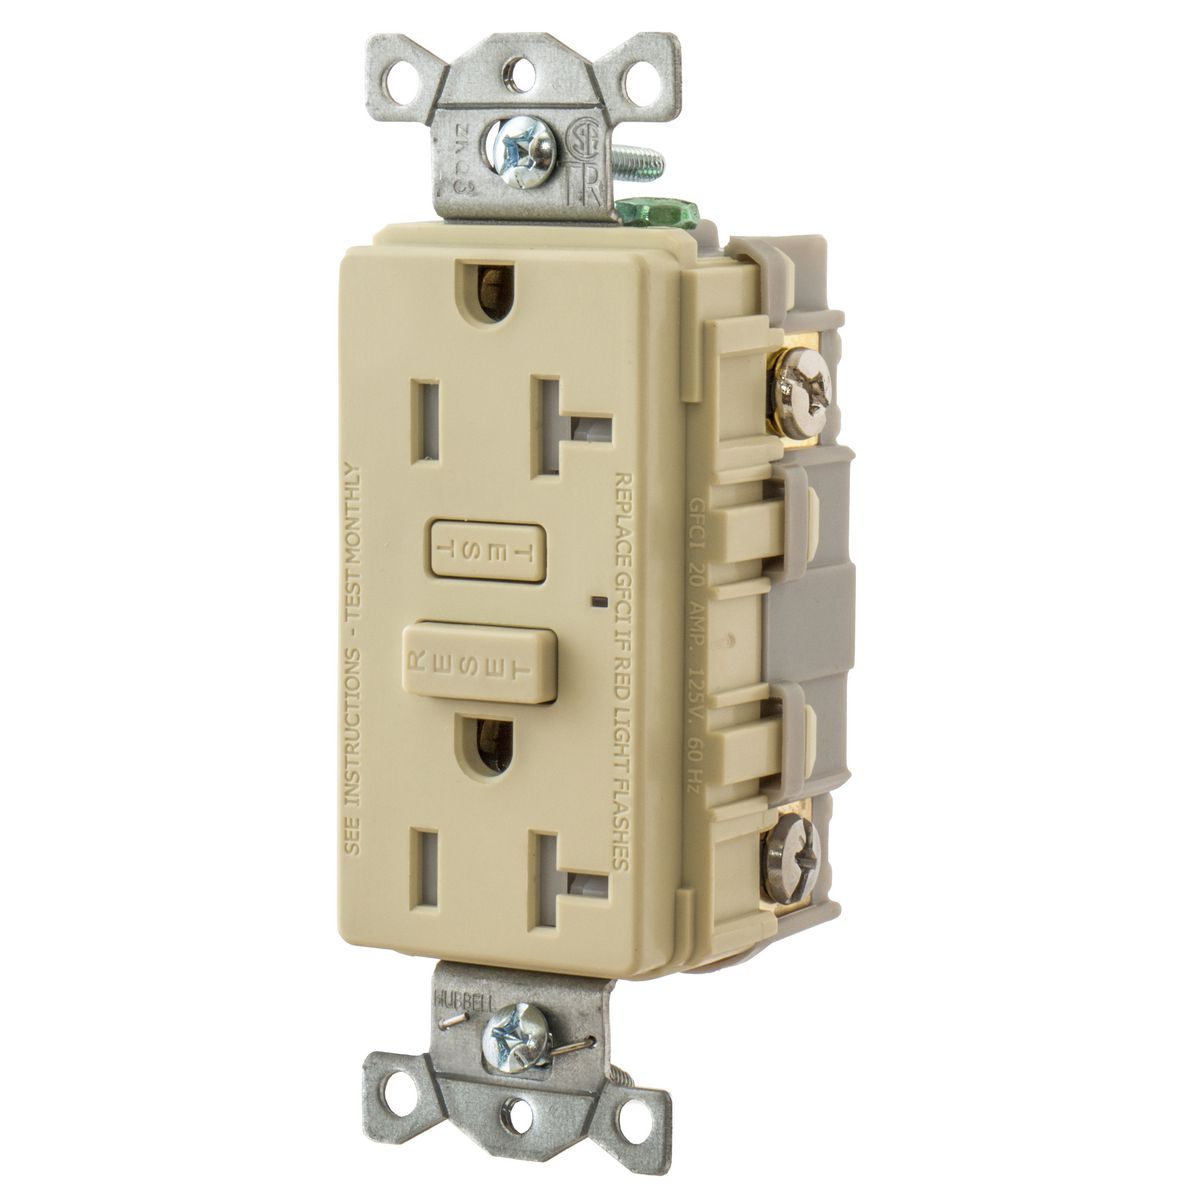 WIRING DEVICE-KELLEMS,GFT20I,20A HUBBELL PRO GFR TR IVORY